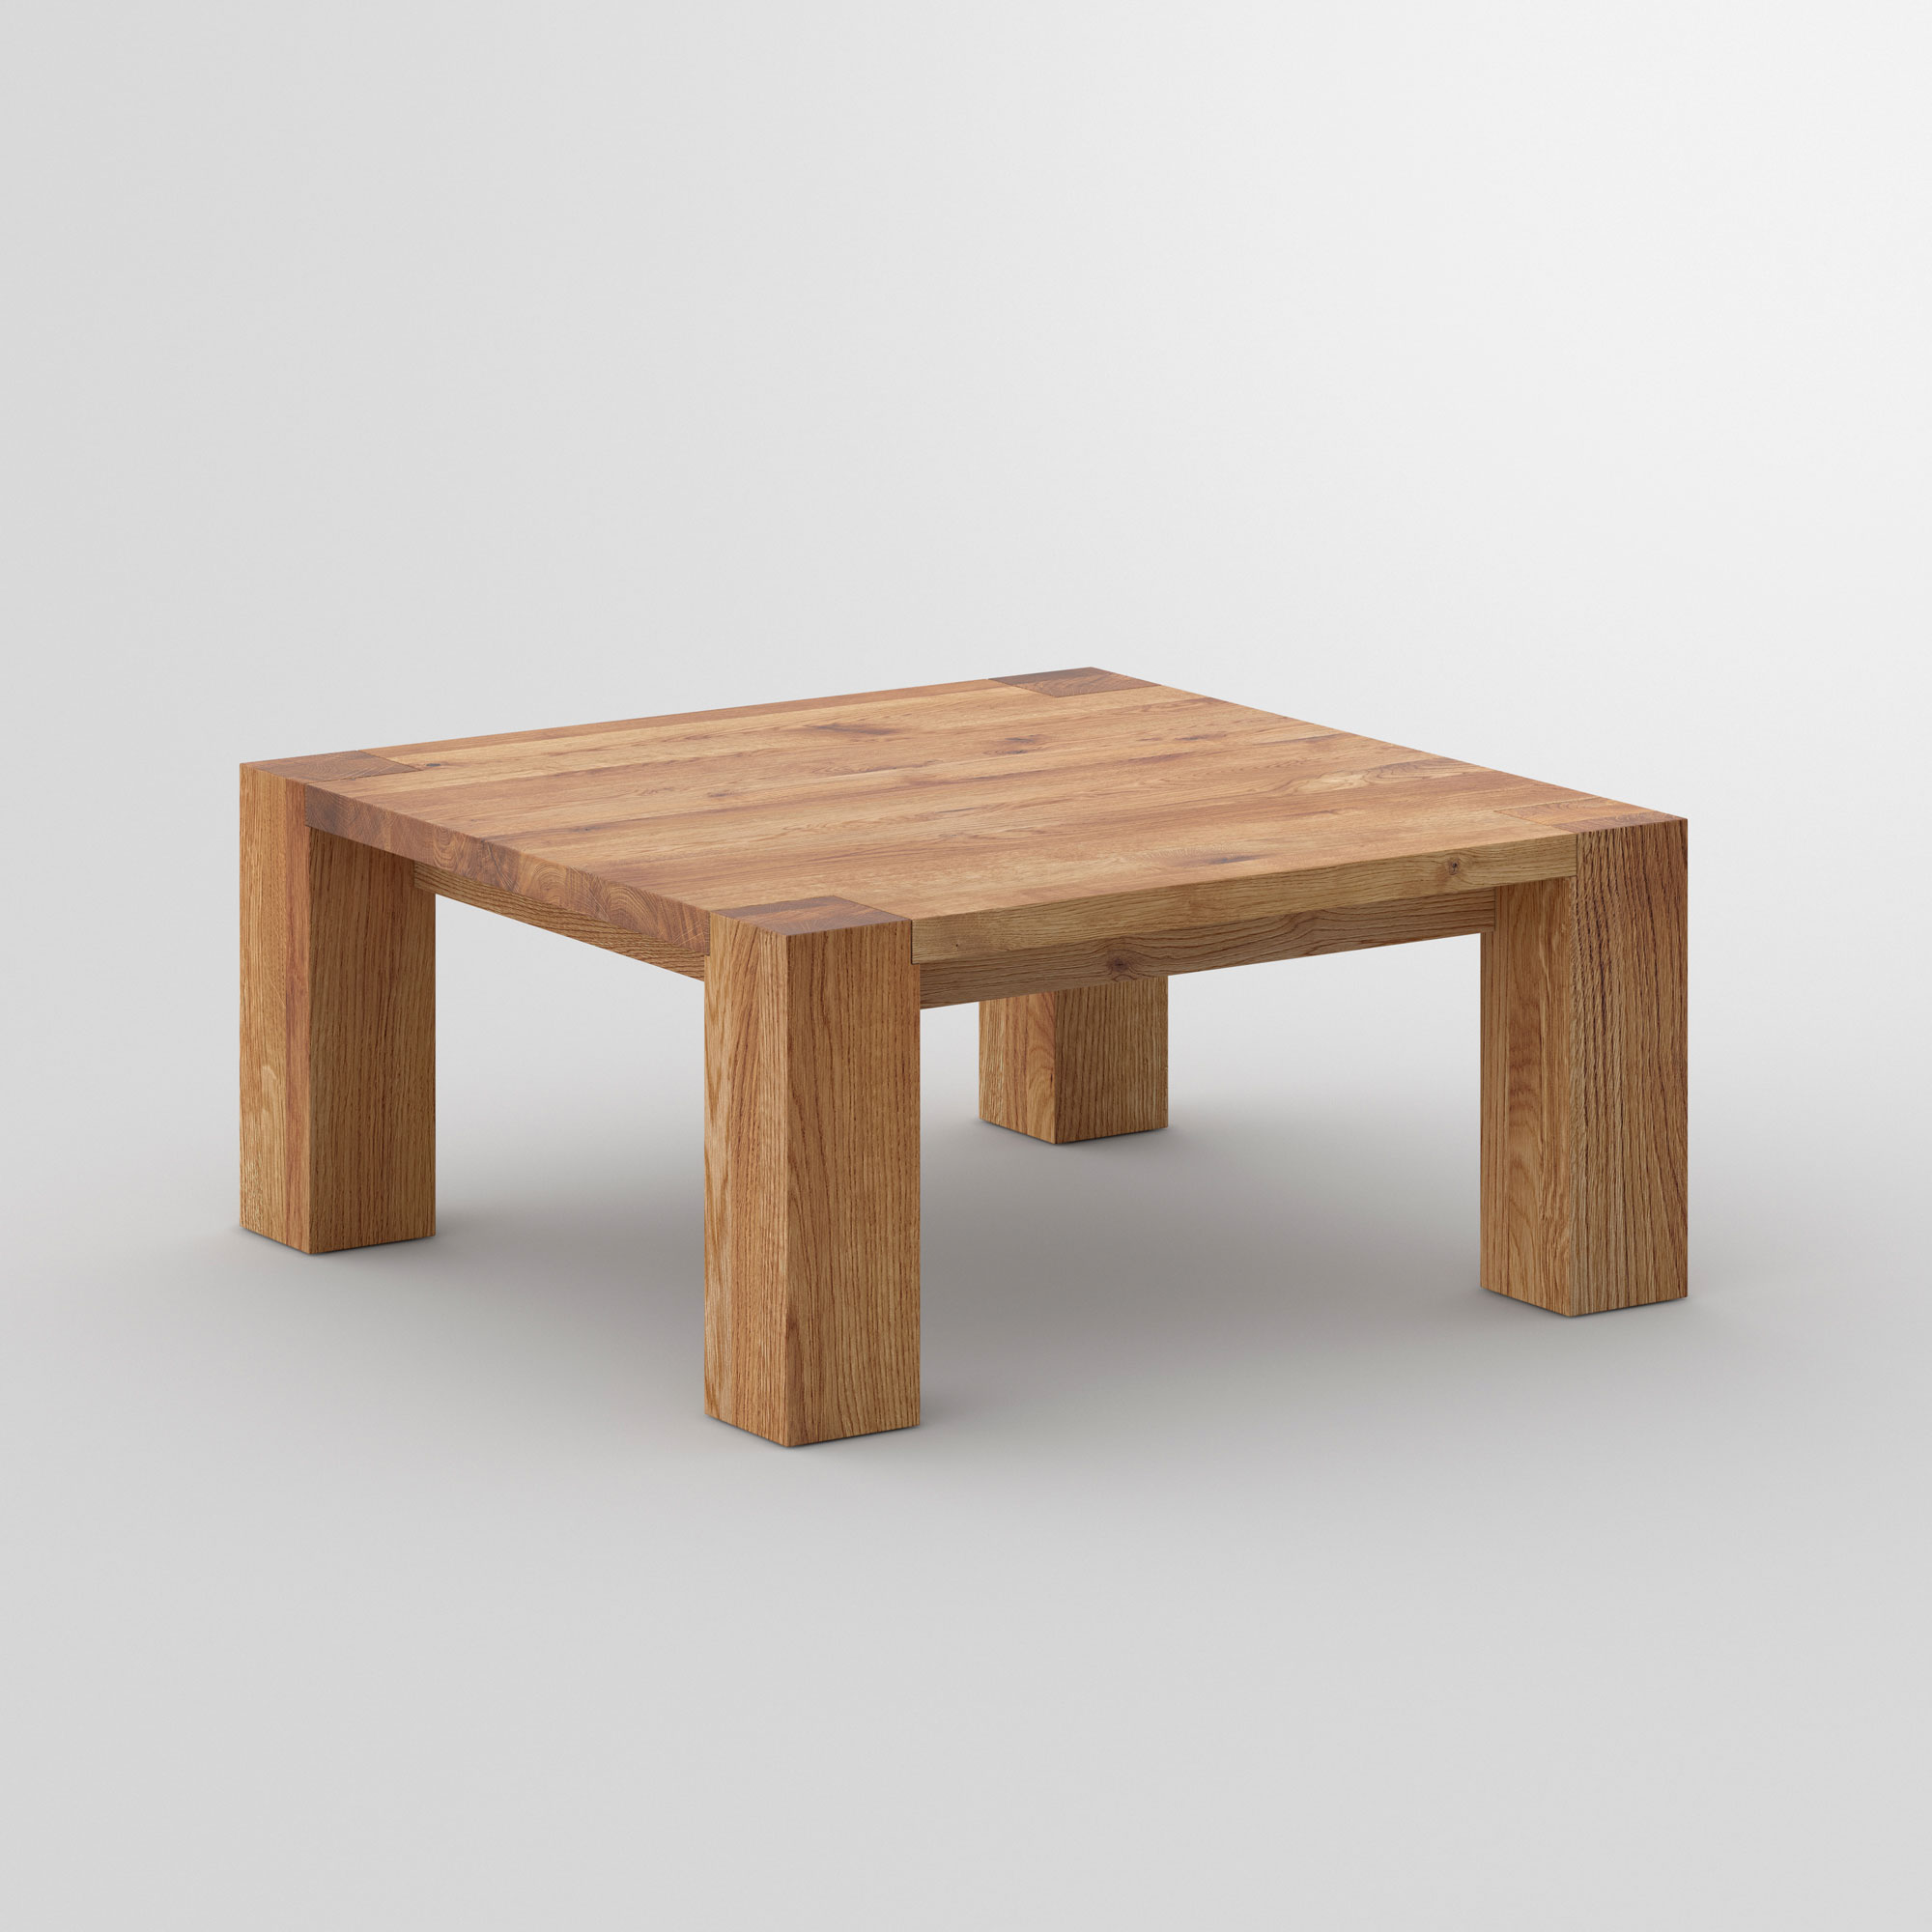 Solid Wood Coffee Table TAURUS 4 B14X14 cam2 custom made in solid wood by vitamin design